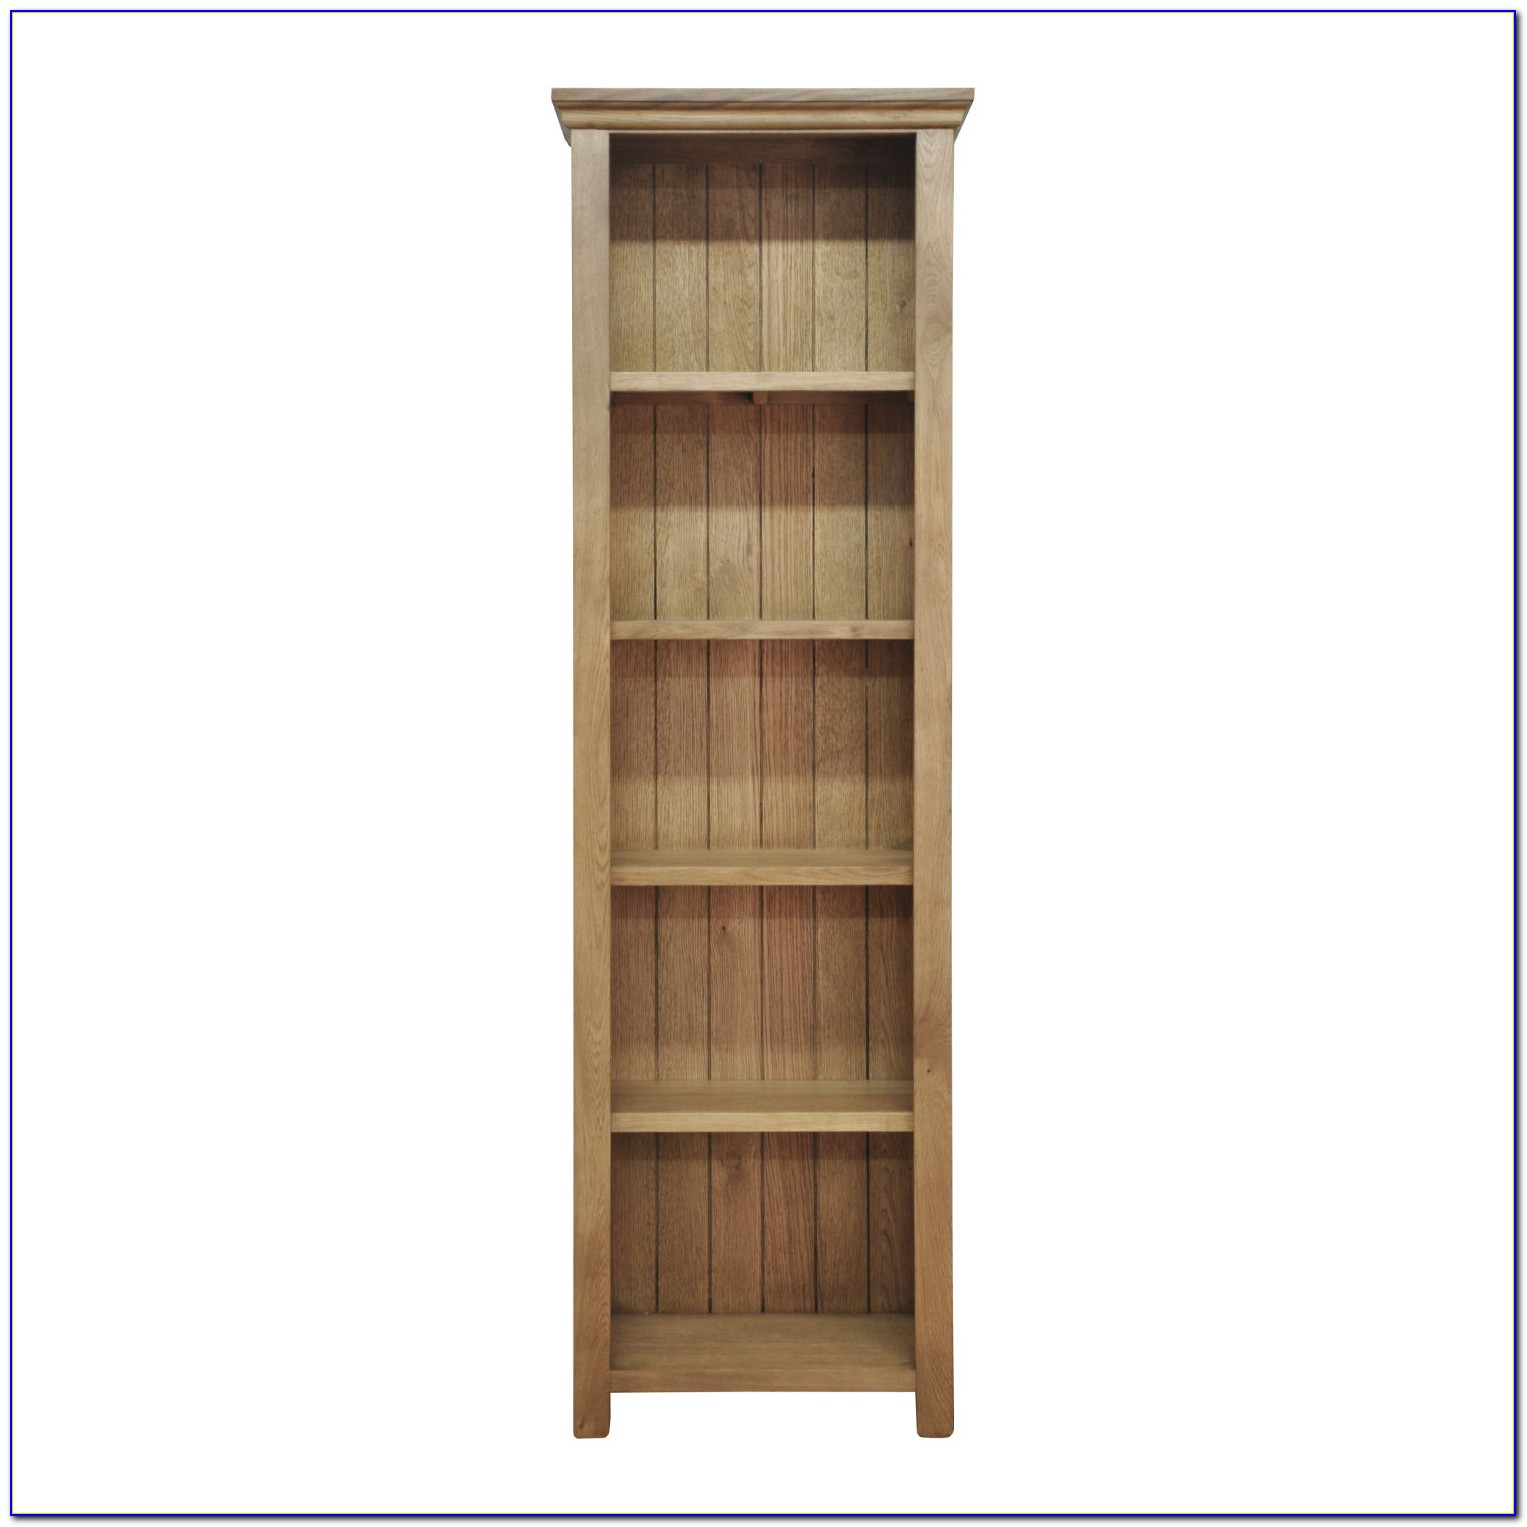 Tall Thin Bookcase 6 Shelves